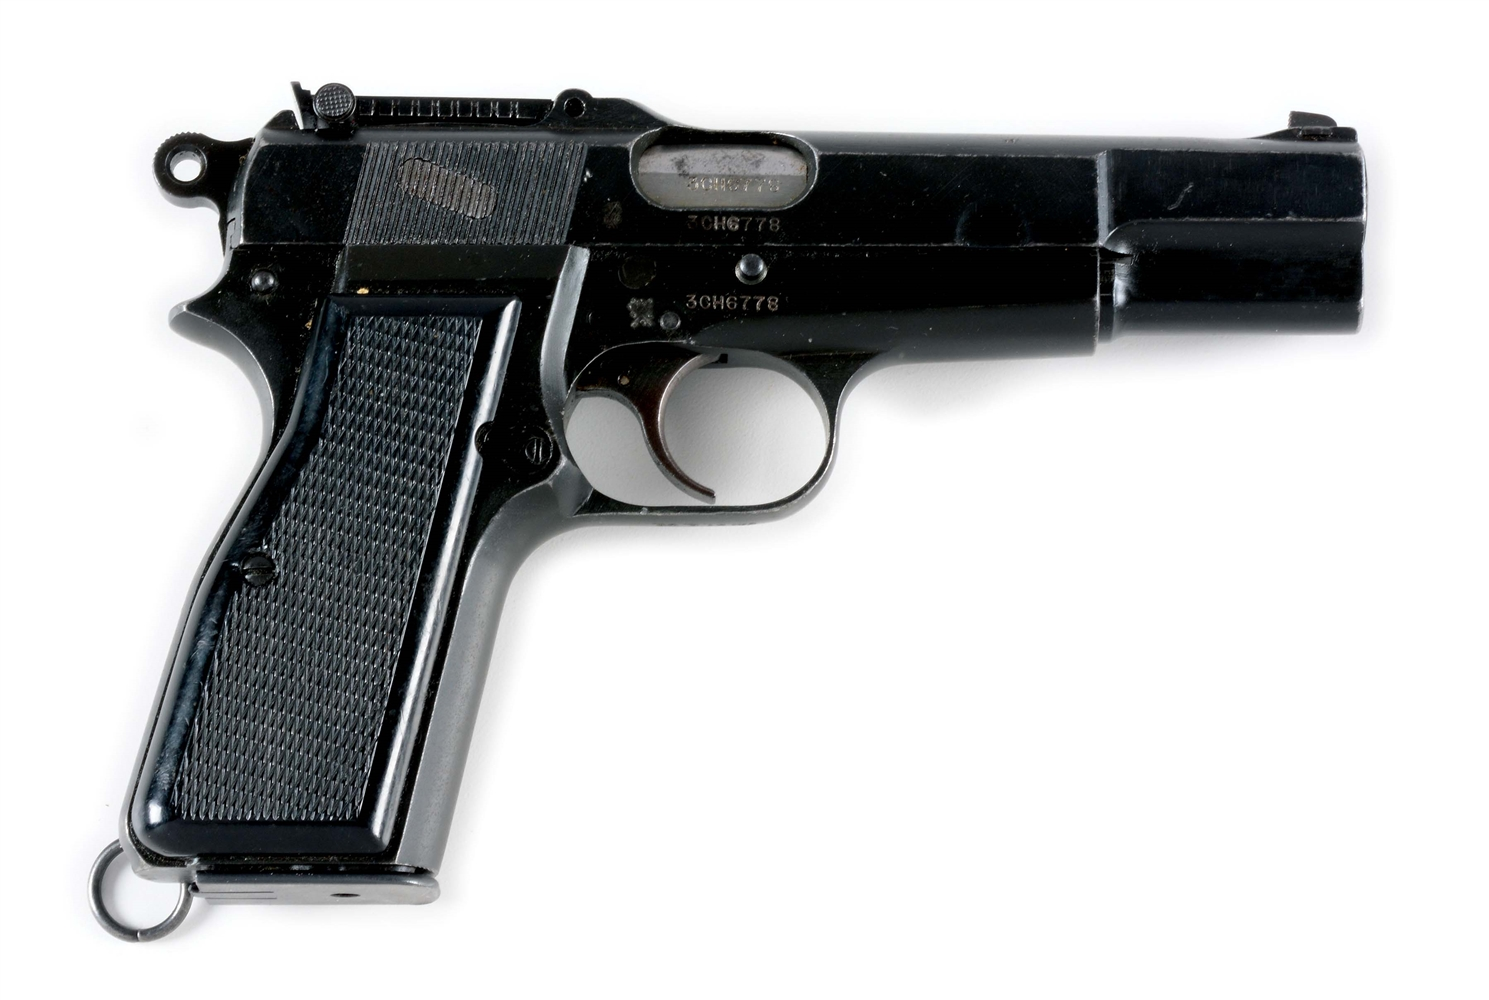 (C) INGLIS BROWNING HI-POWER SEMI-AUTOMATIC PISTOL.